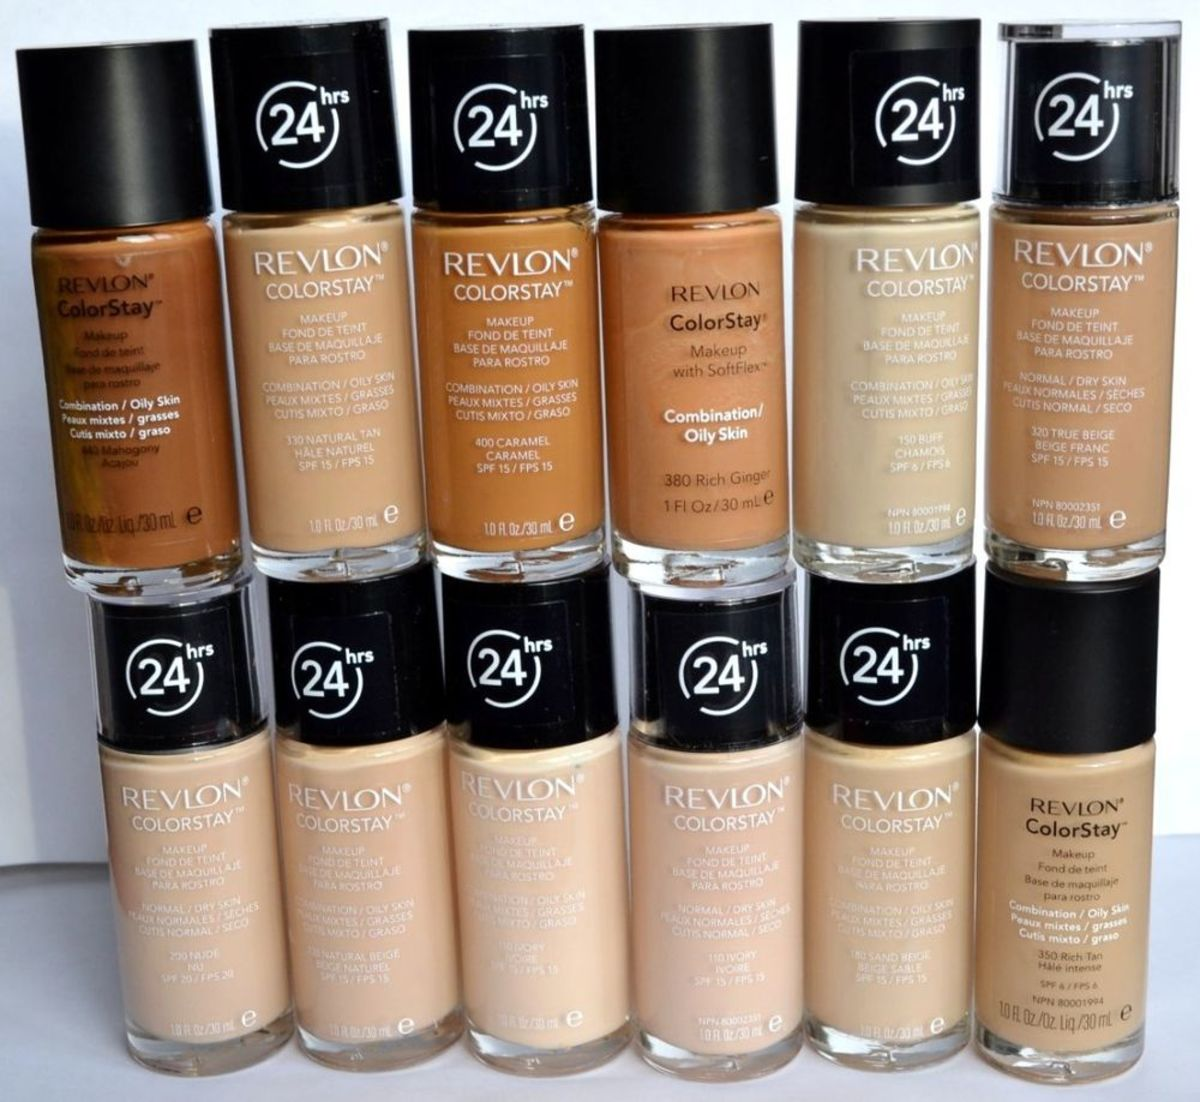 My Review of Revlon ColorStay: The Best Foundation for Oily/Acne-Prone Skin